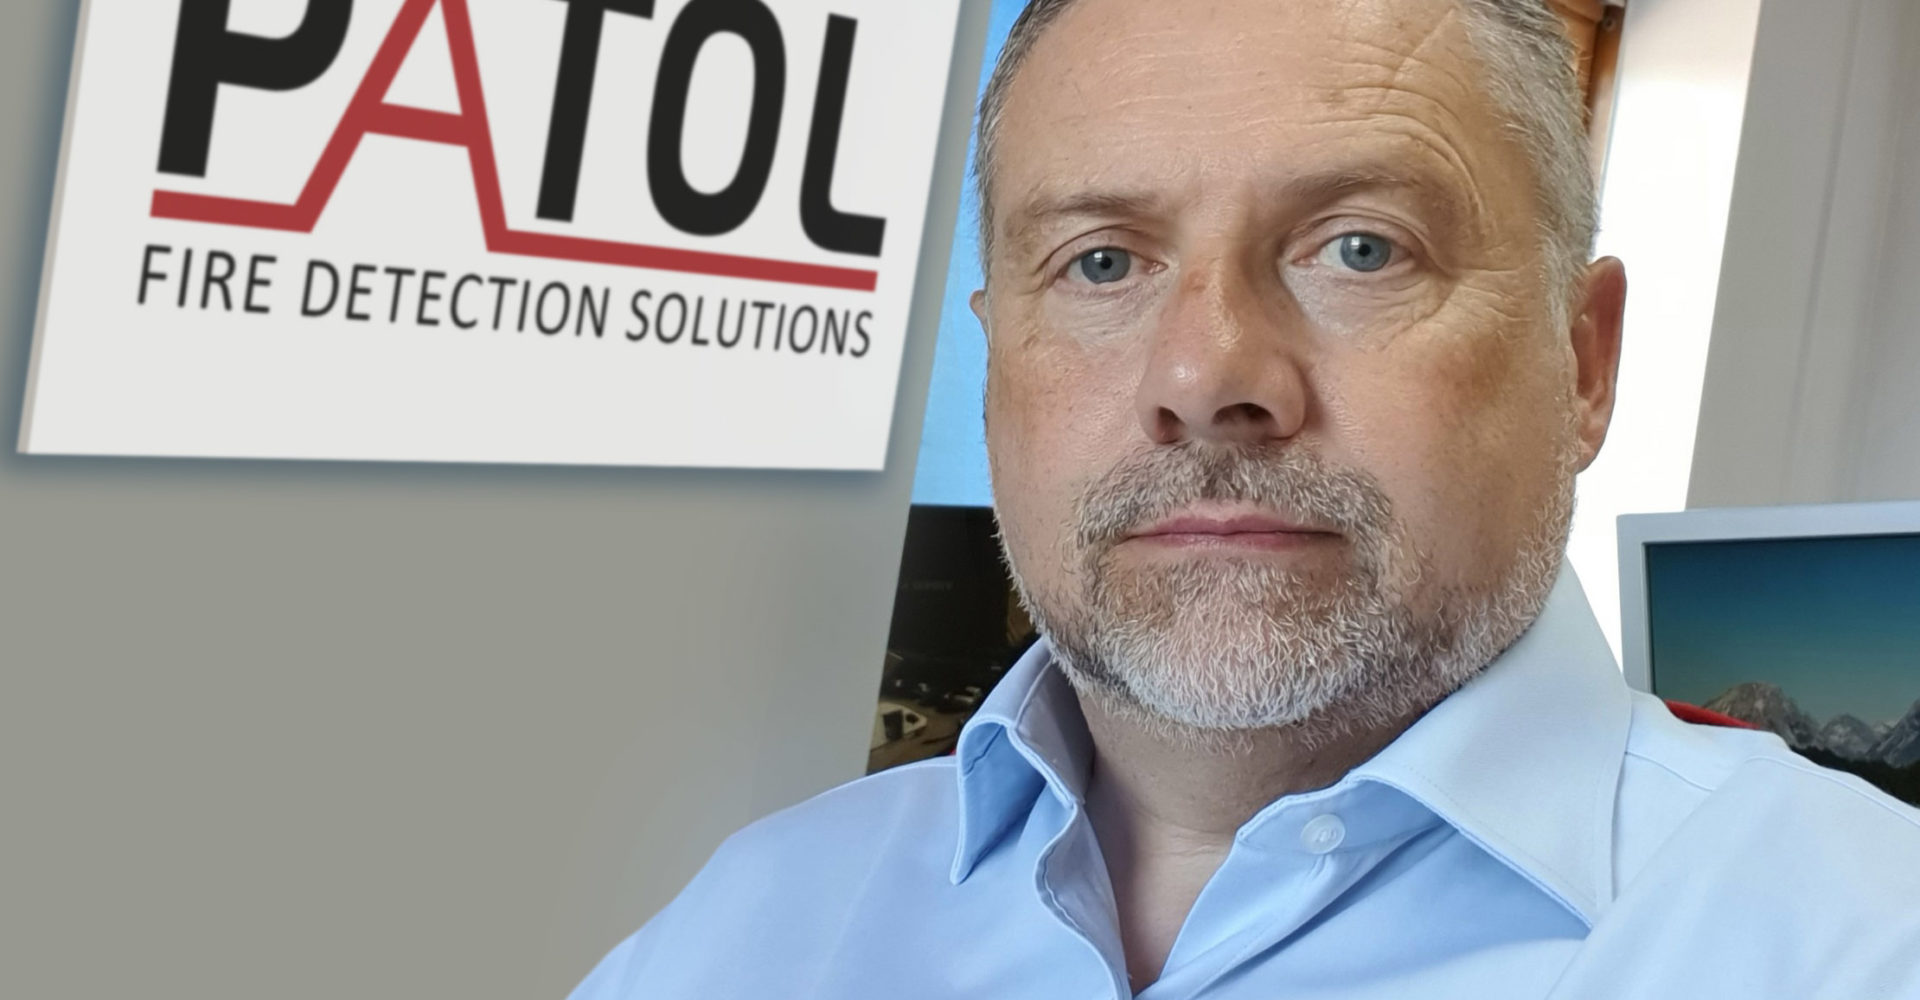 The next stage in the development of Patol has been announced with the brand new appointment of Iain Cumner as Sales Director.